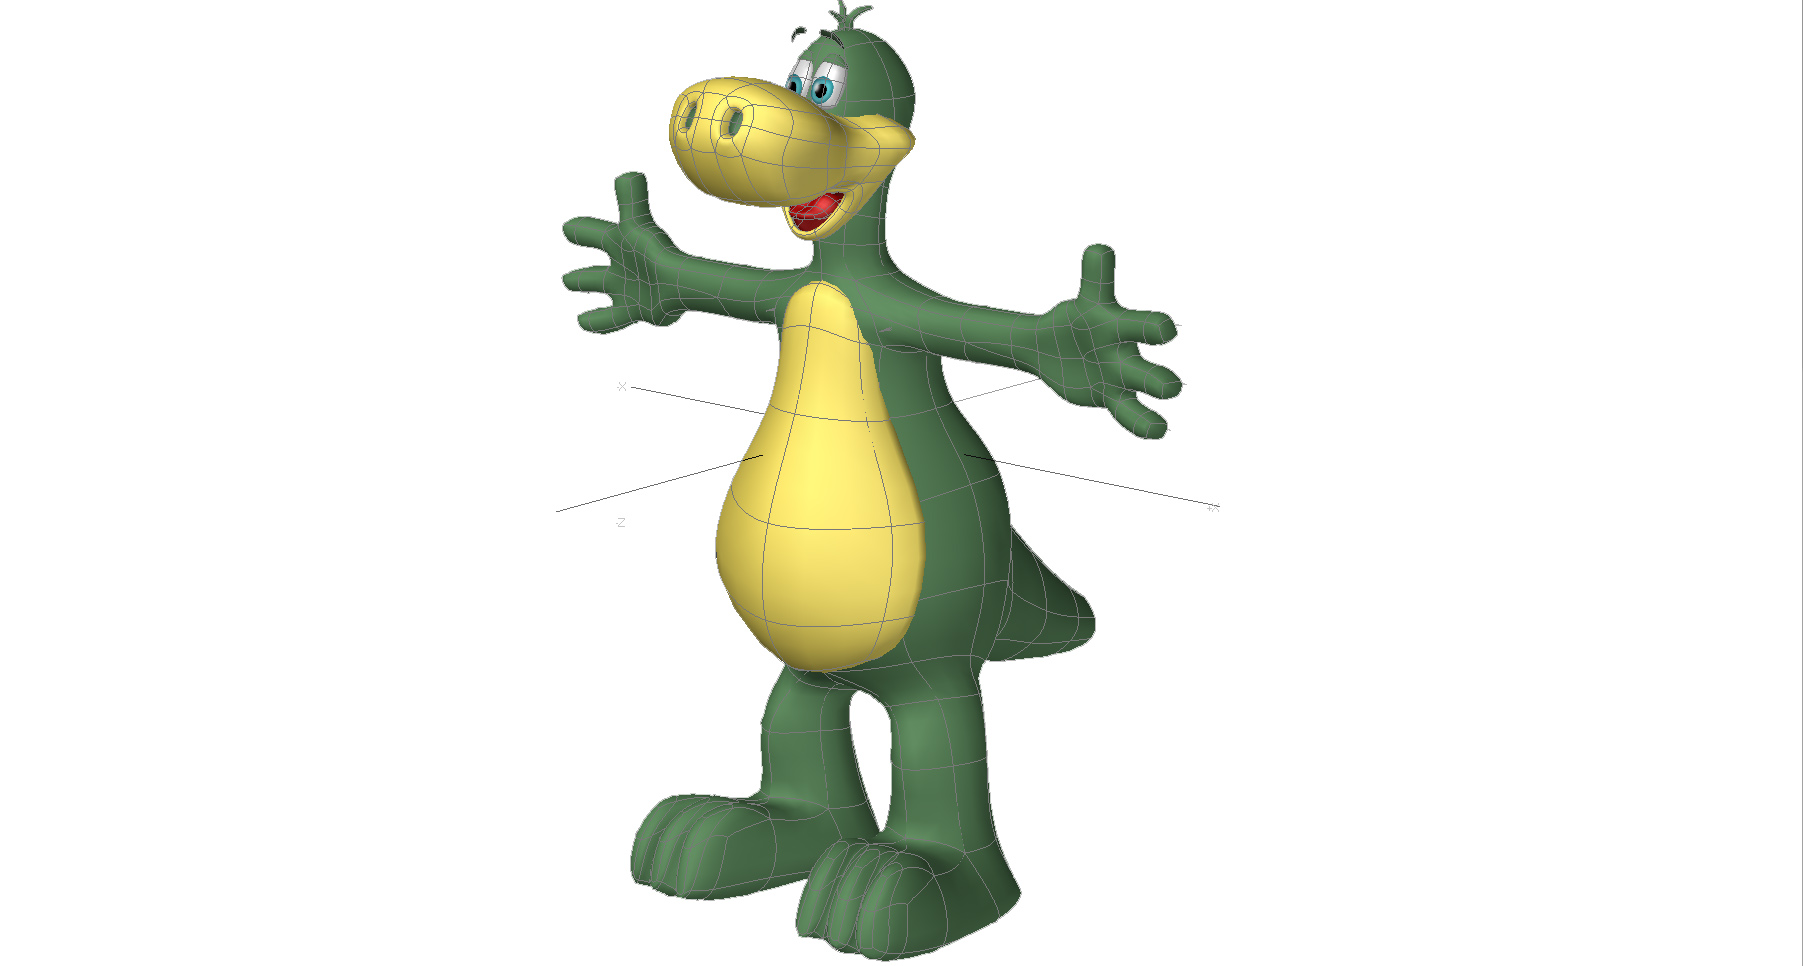 Cartoon Characters 3d Model : Dinosaur cartoon character d model rigged max obj ds fbx